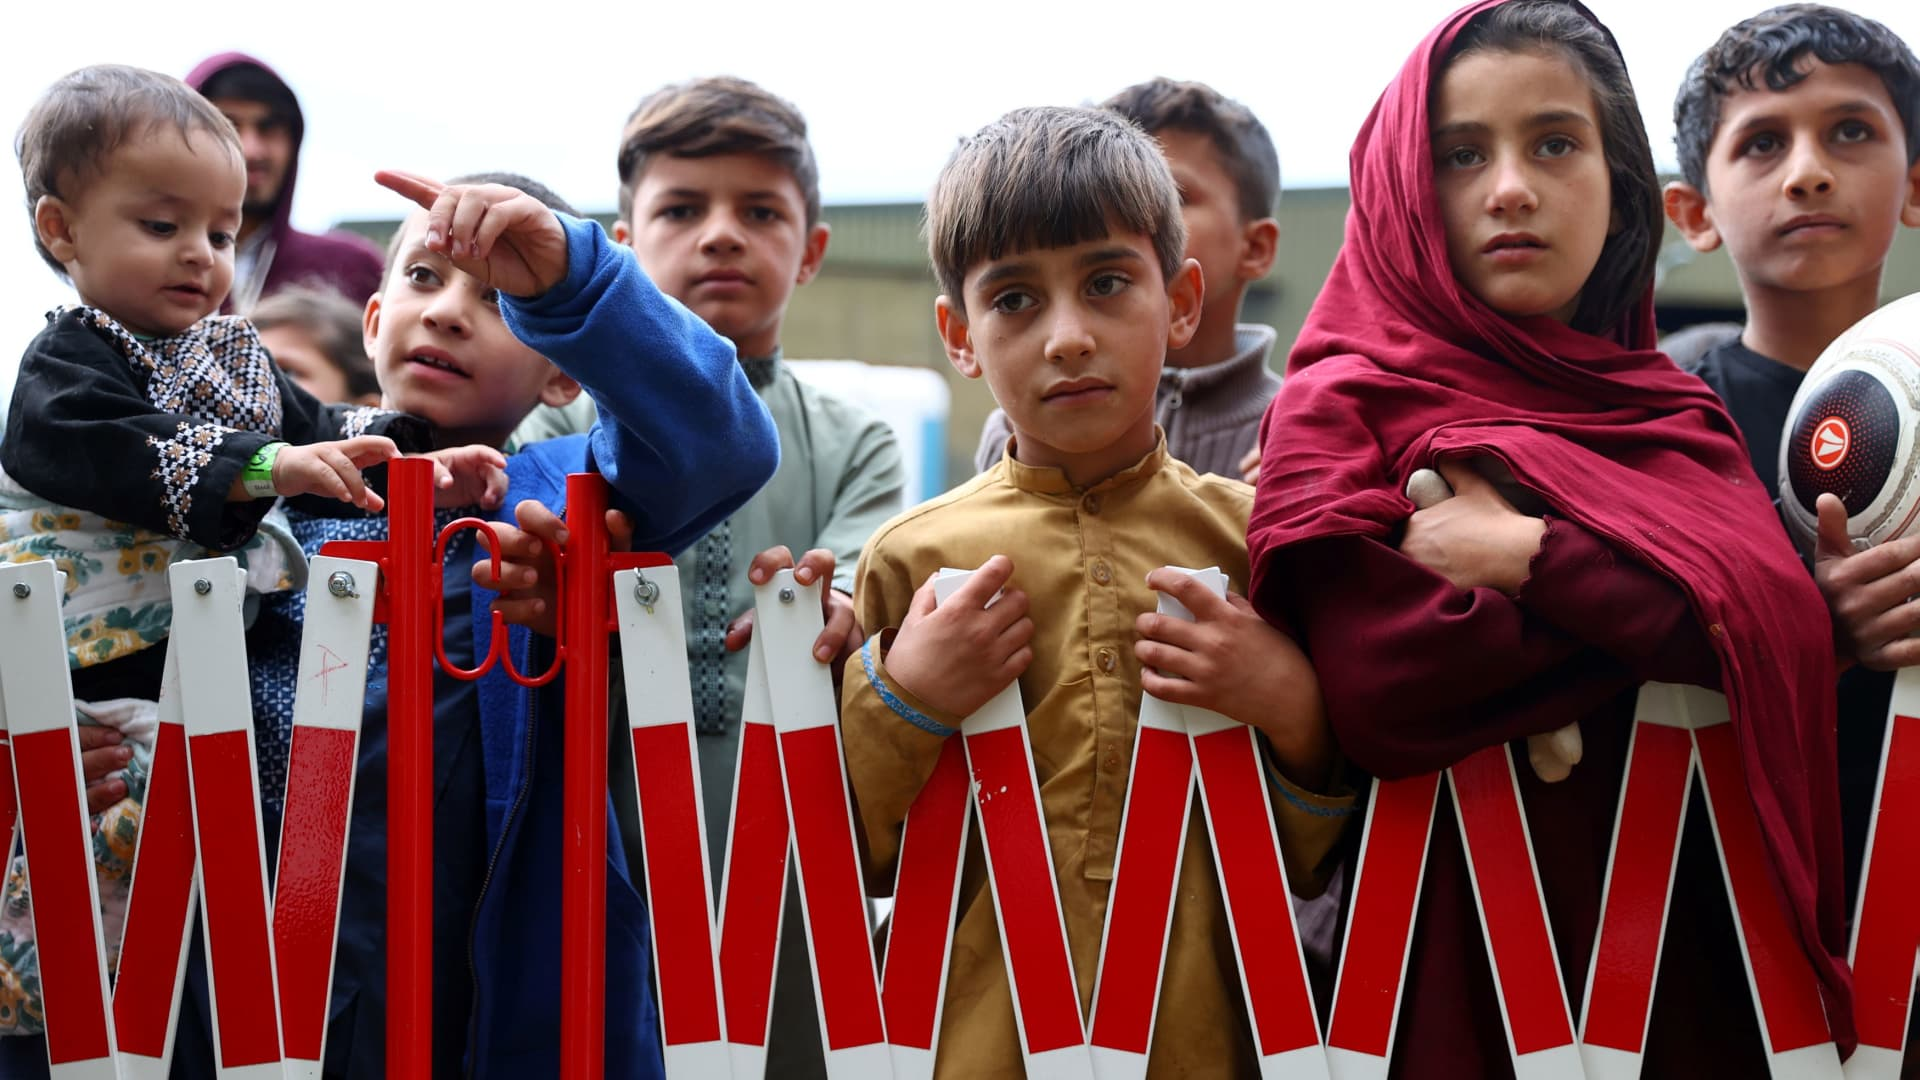 Children evacuated from Afghanistan wait at a temporary shelter in the U.S. Army's Rhine Ordnance Barracks in Kaiserslautern, Germany, on Aug. 30, 2021.